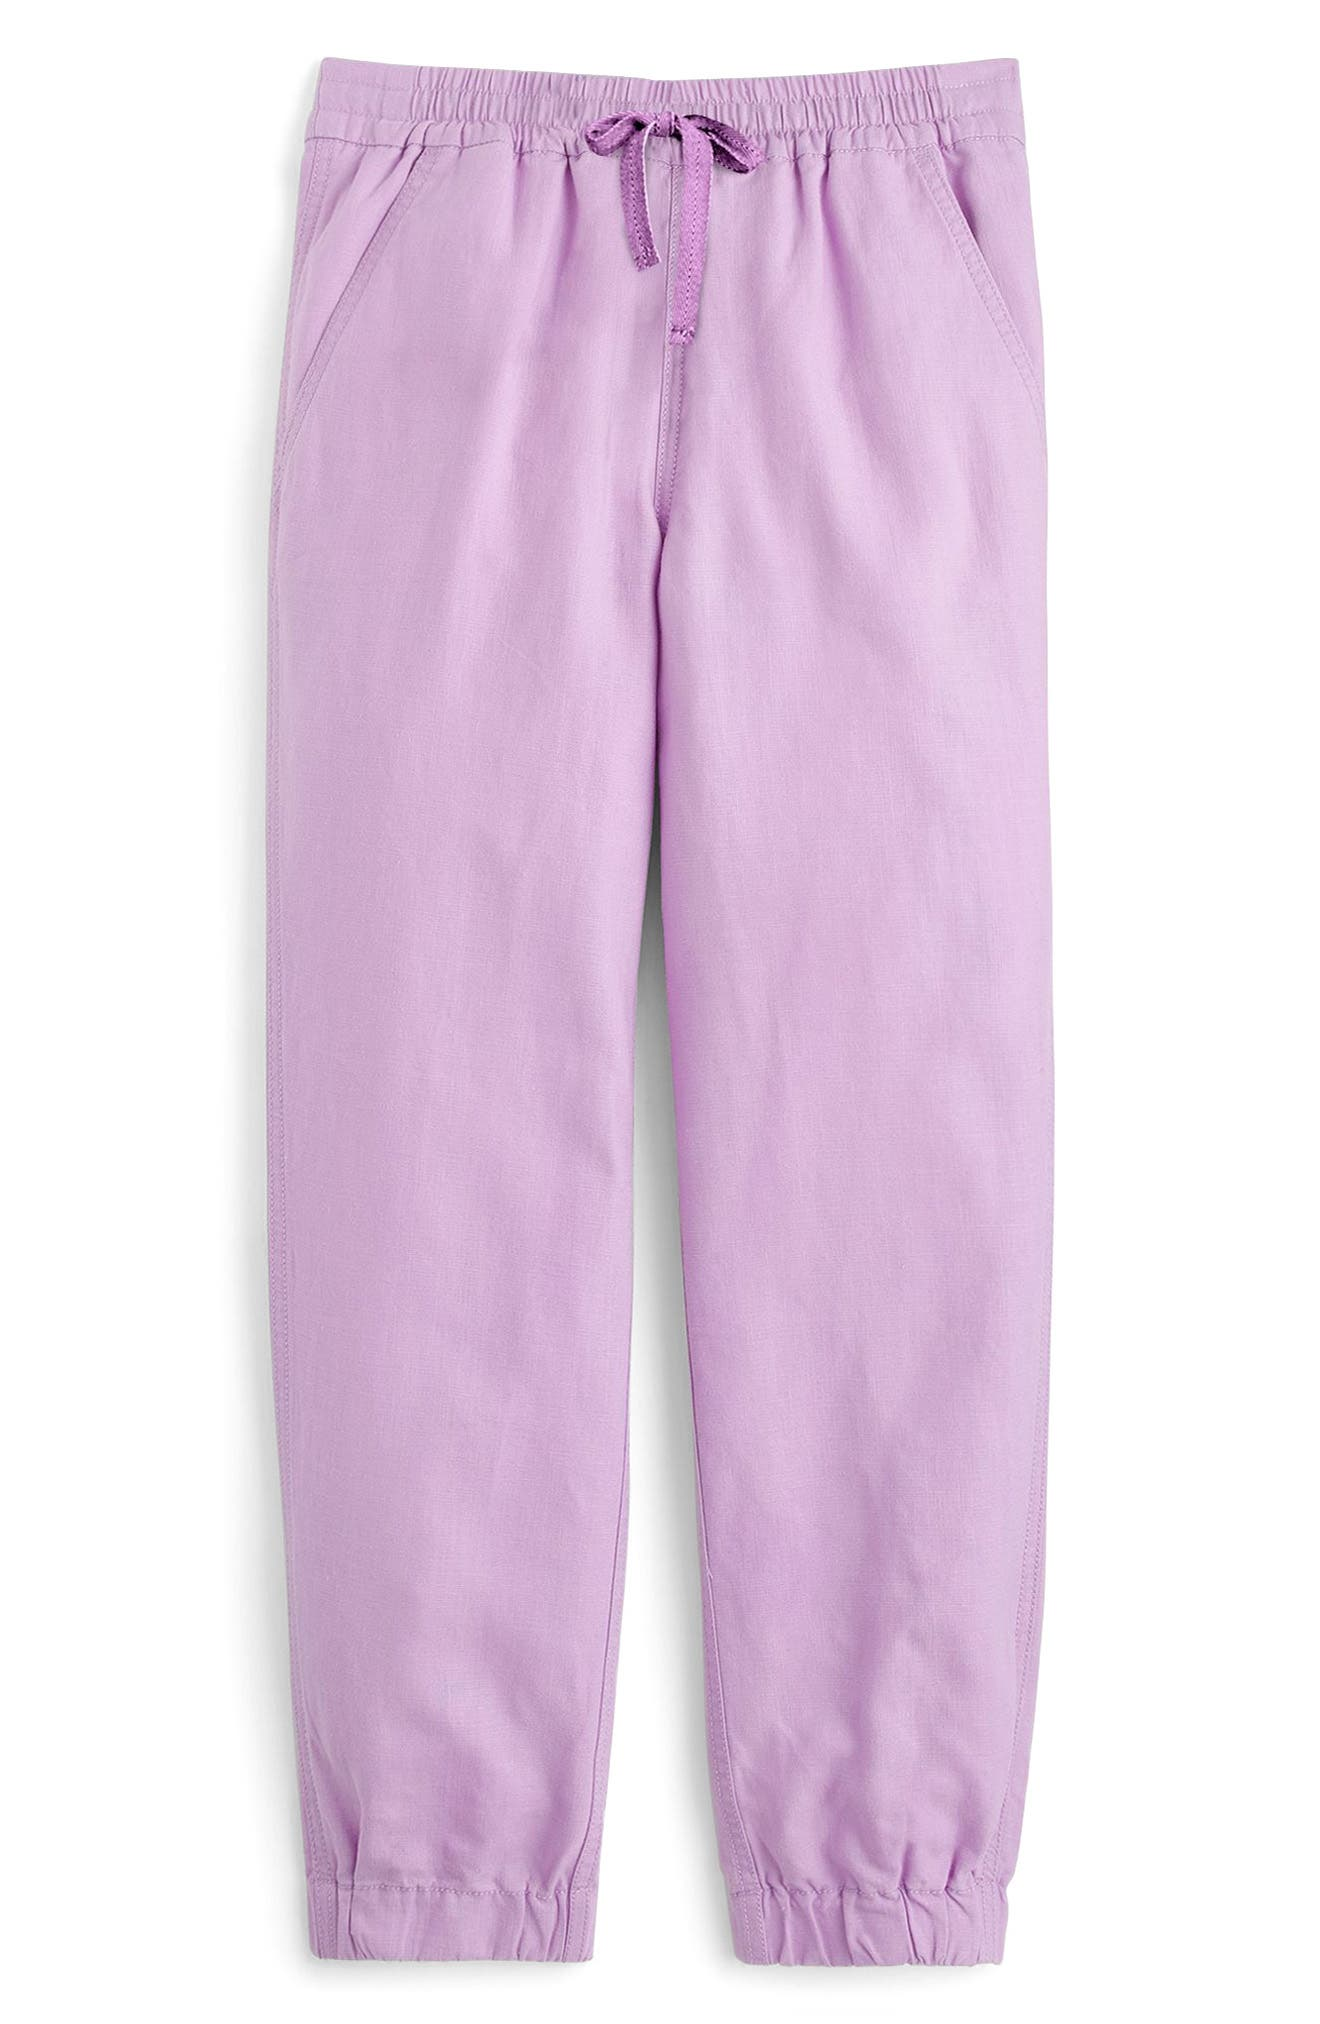 New Seaside Pants,                         Main,                         color, Faded Lavender